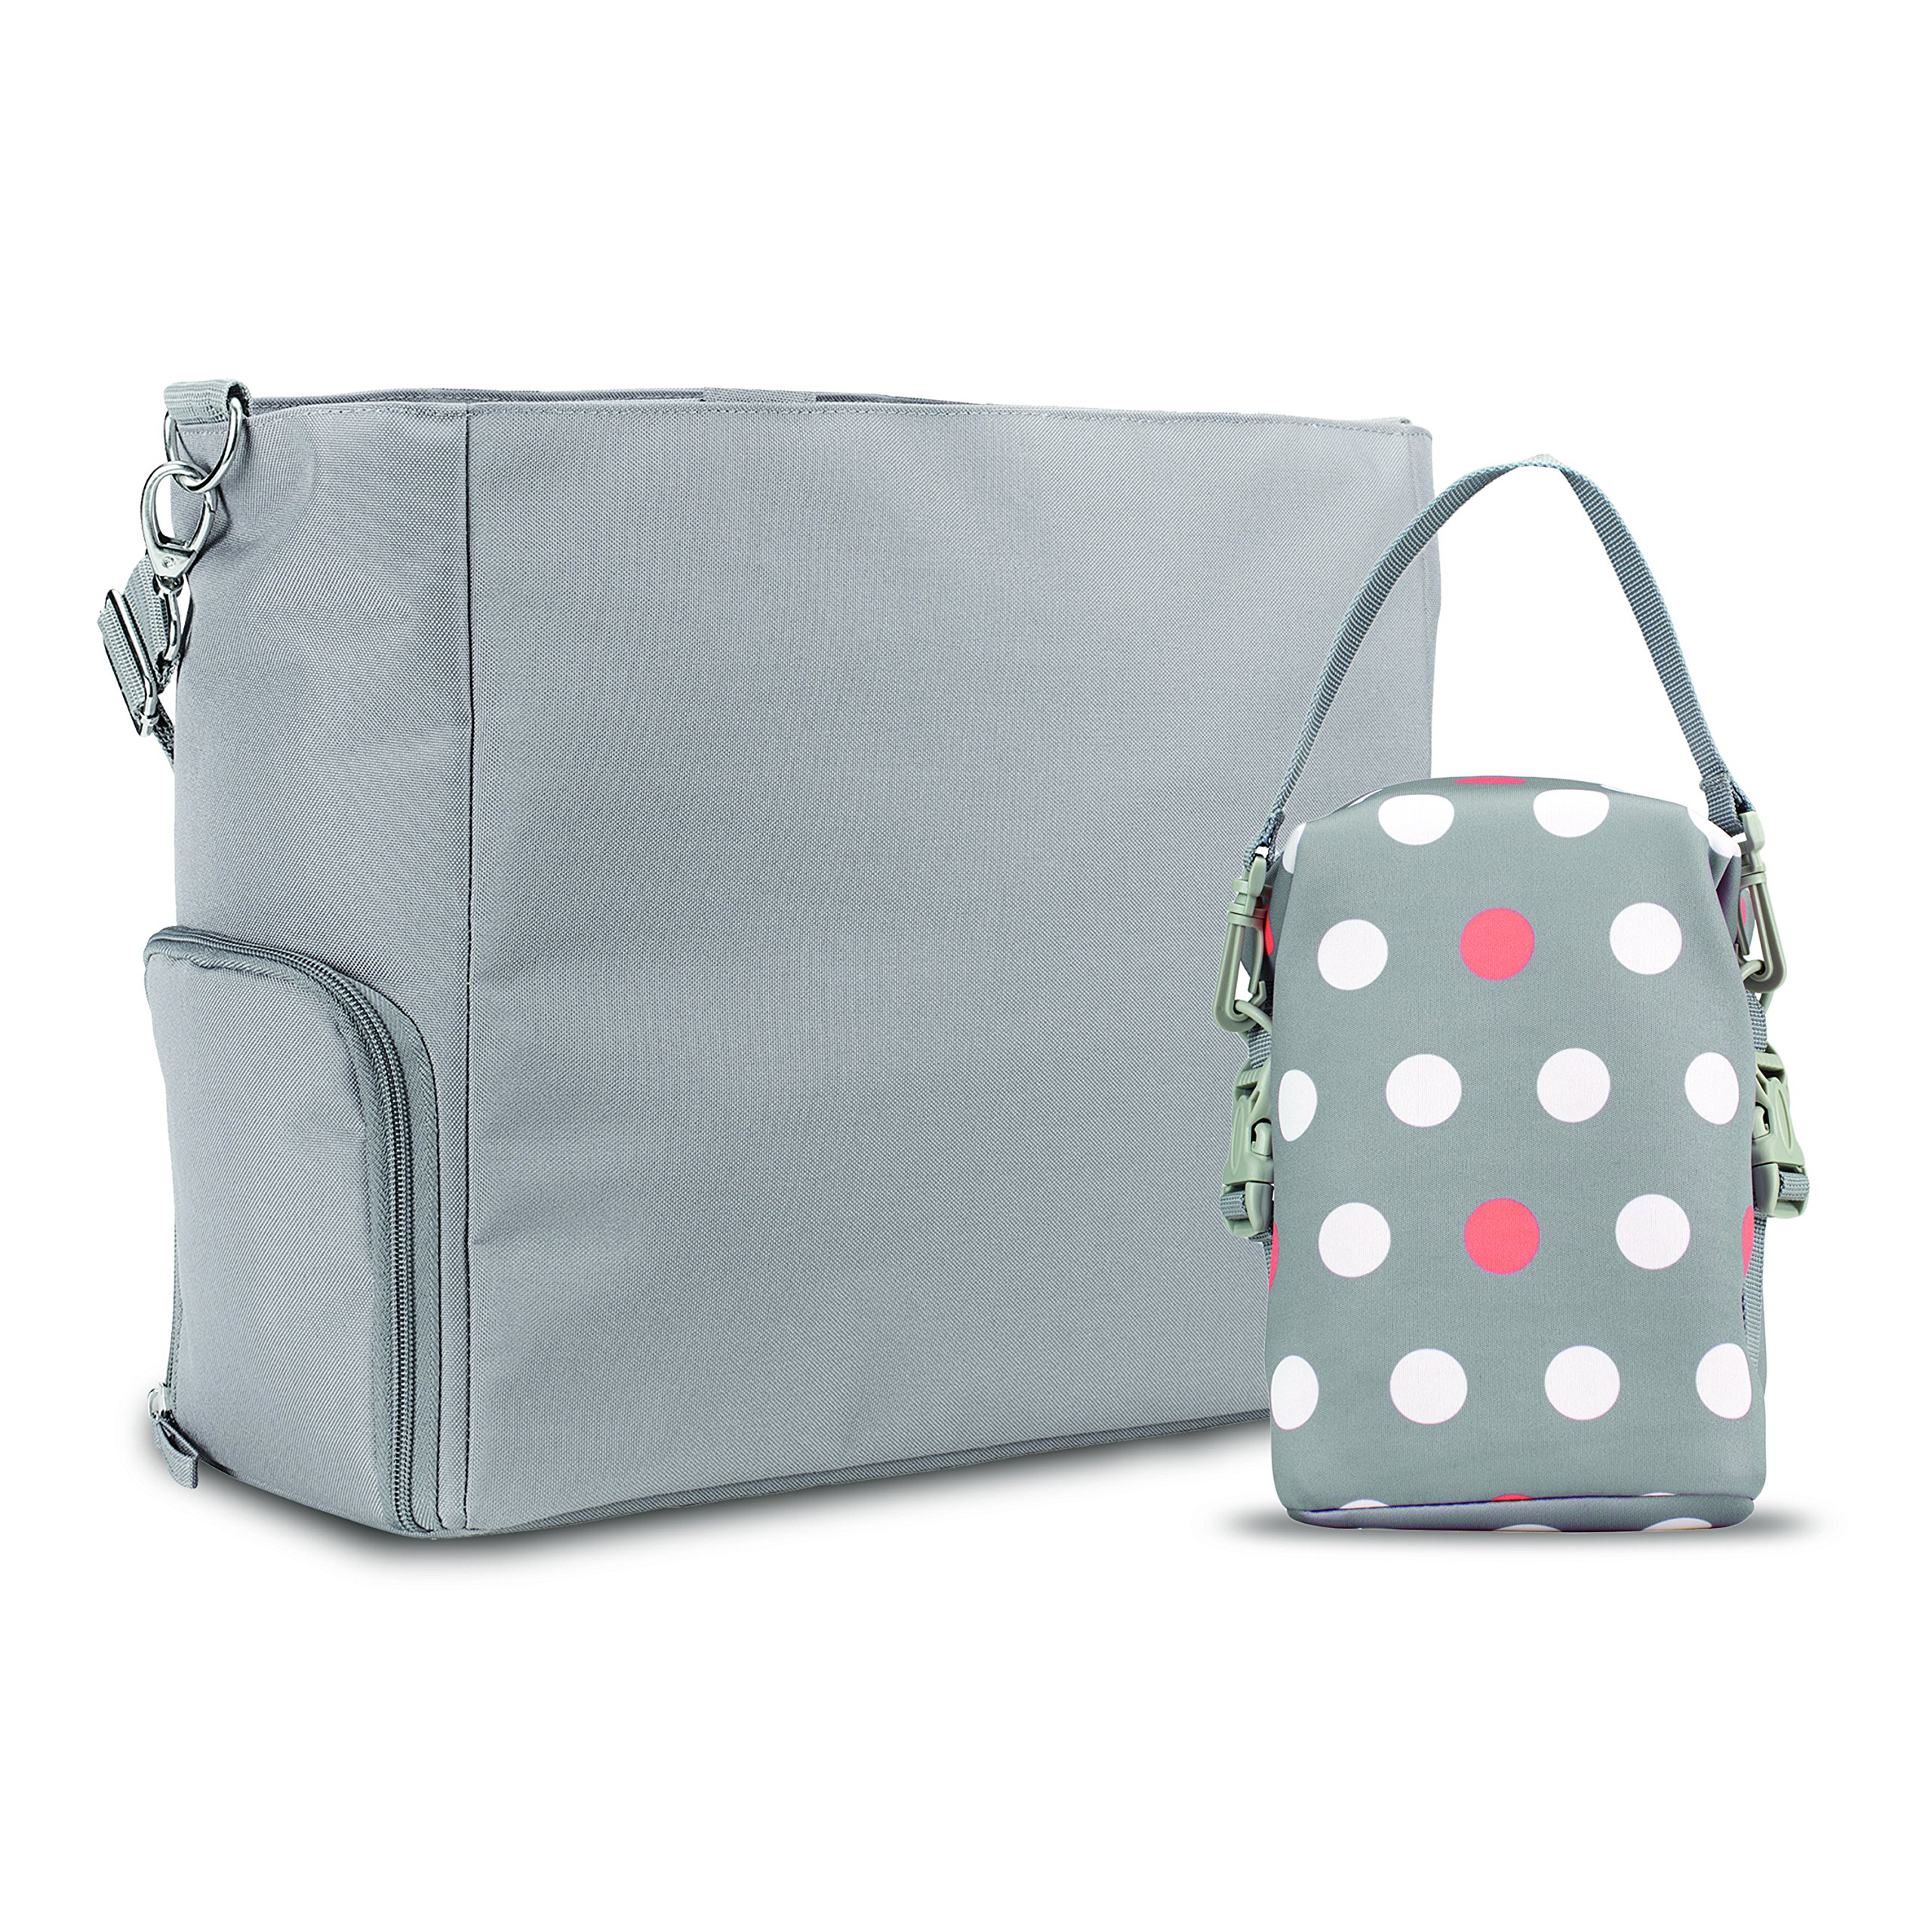 Dr. Brown's Breast Pump Carryall Bag and Convertible Bottle Tote, Grey and Polka Dot